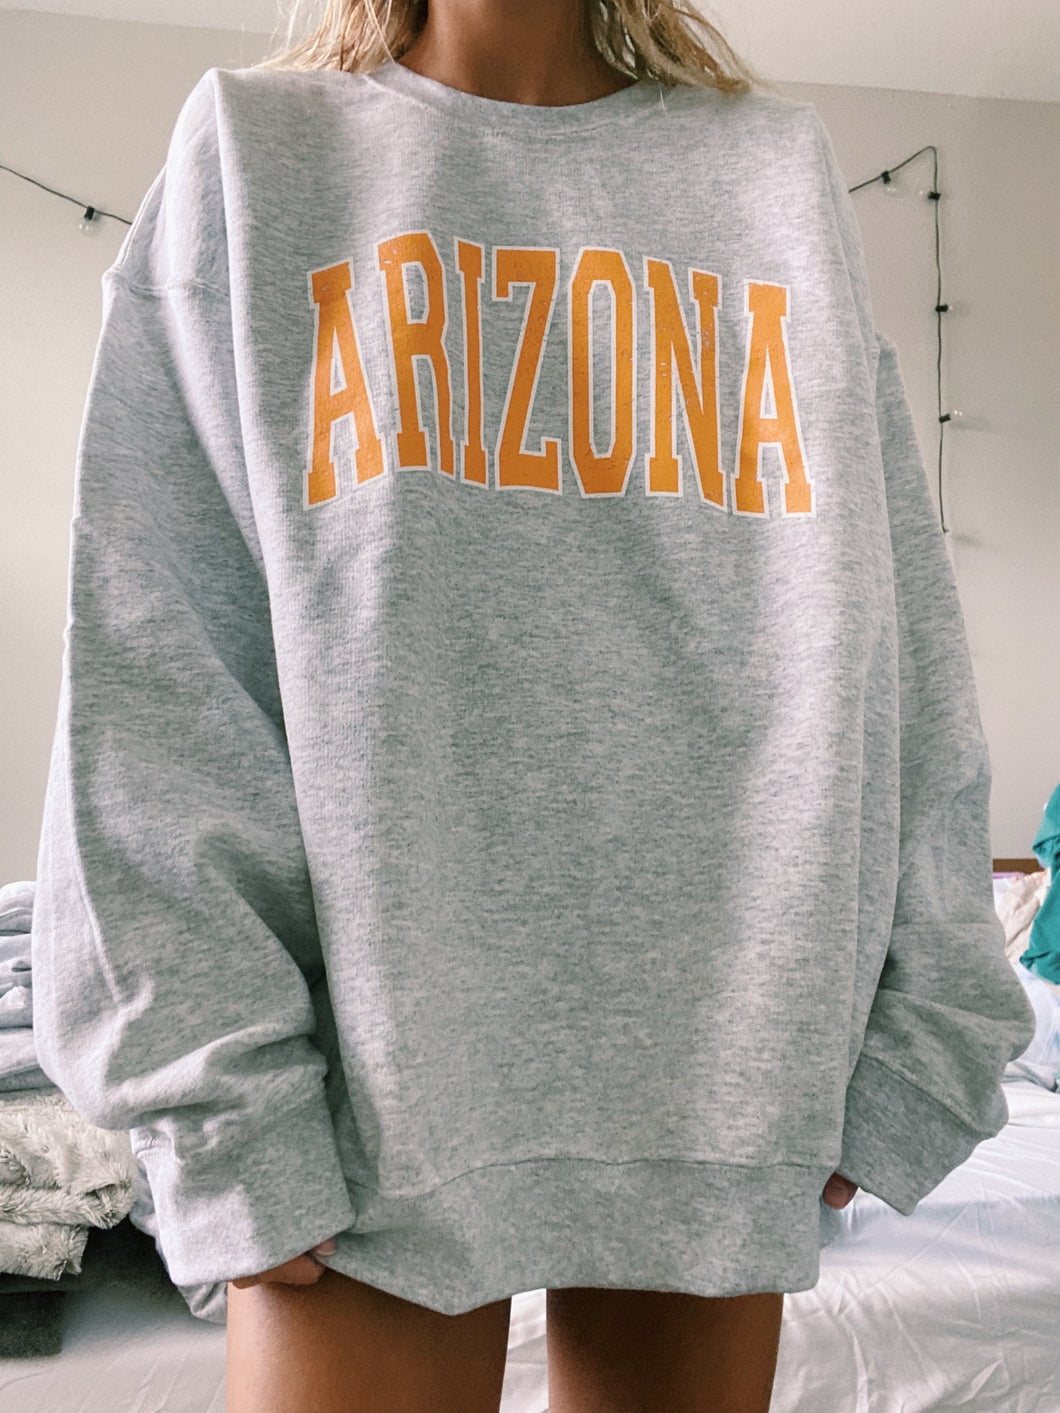 ORIGINAL ARIZONA CREWNECK - Olive Lynn